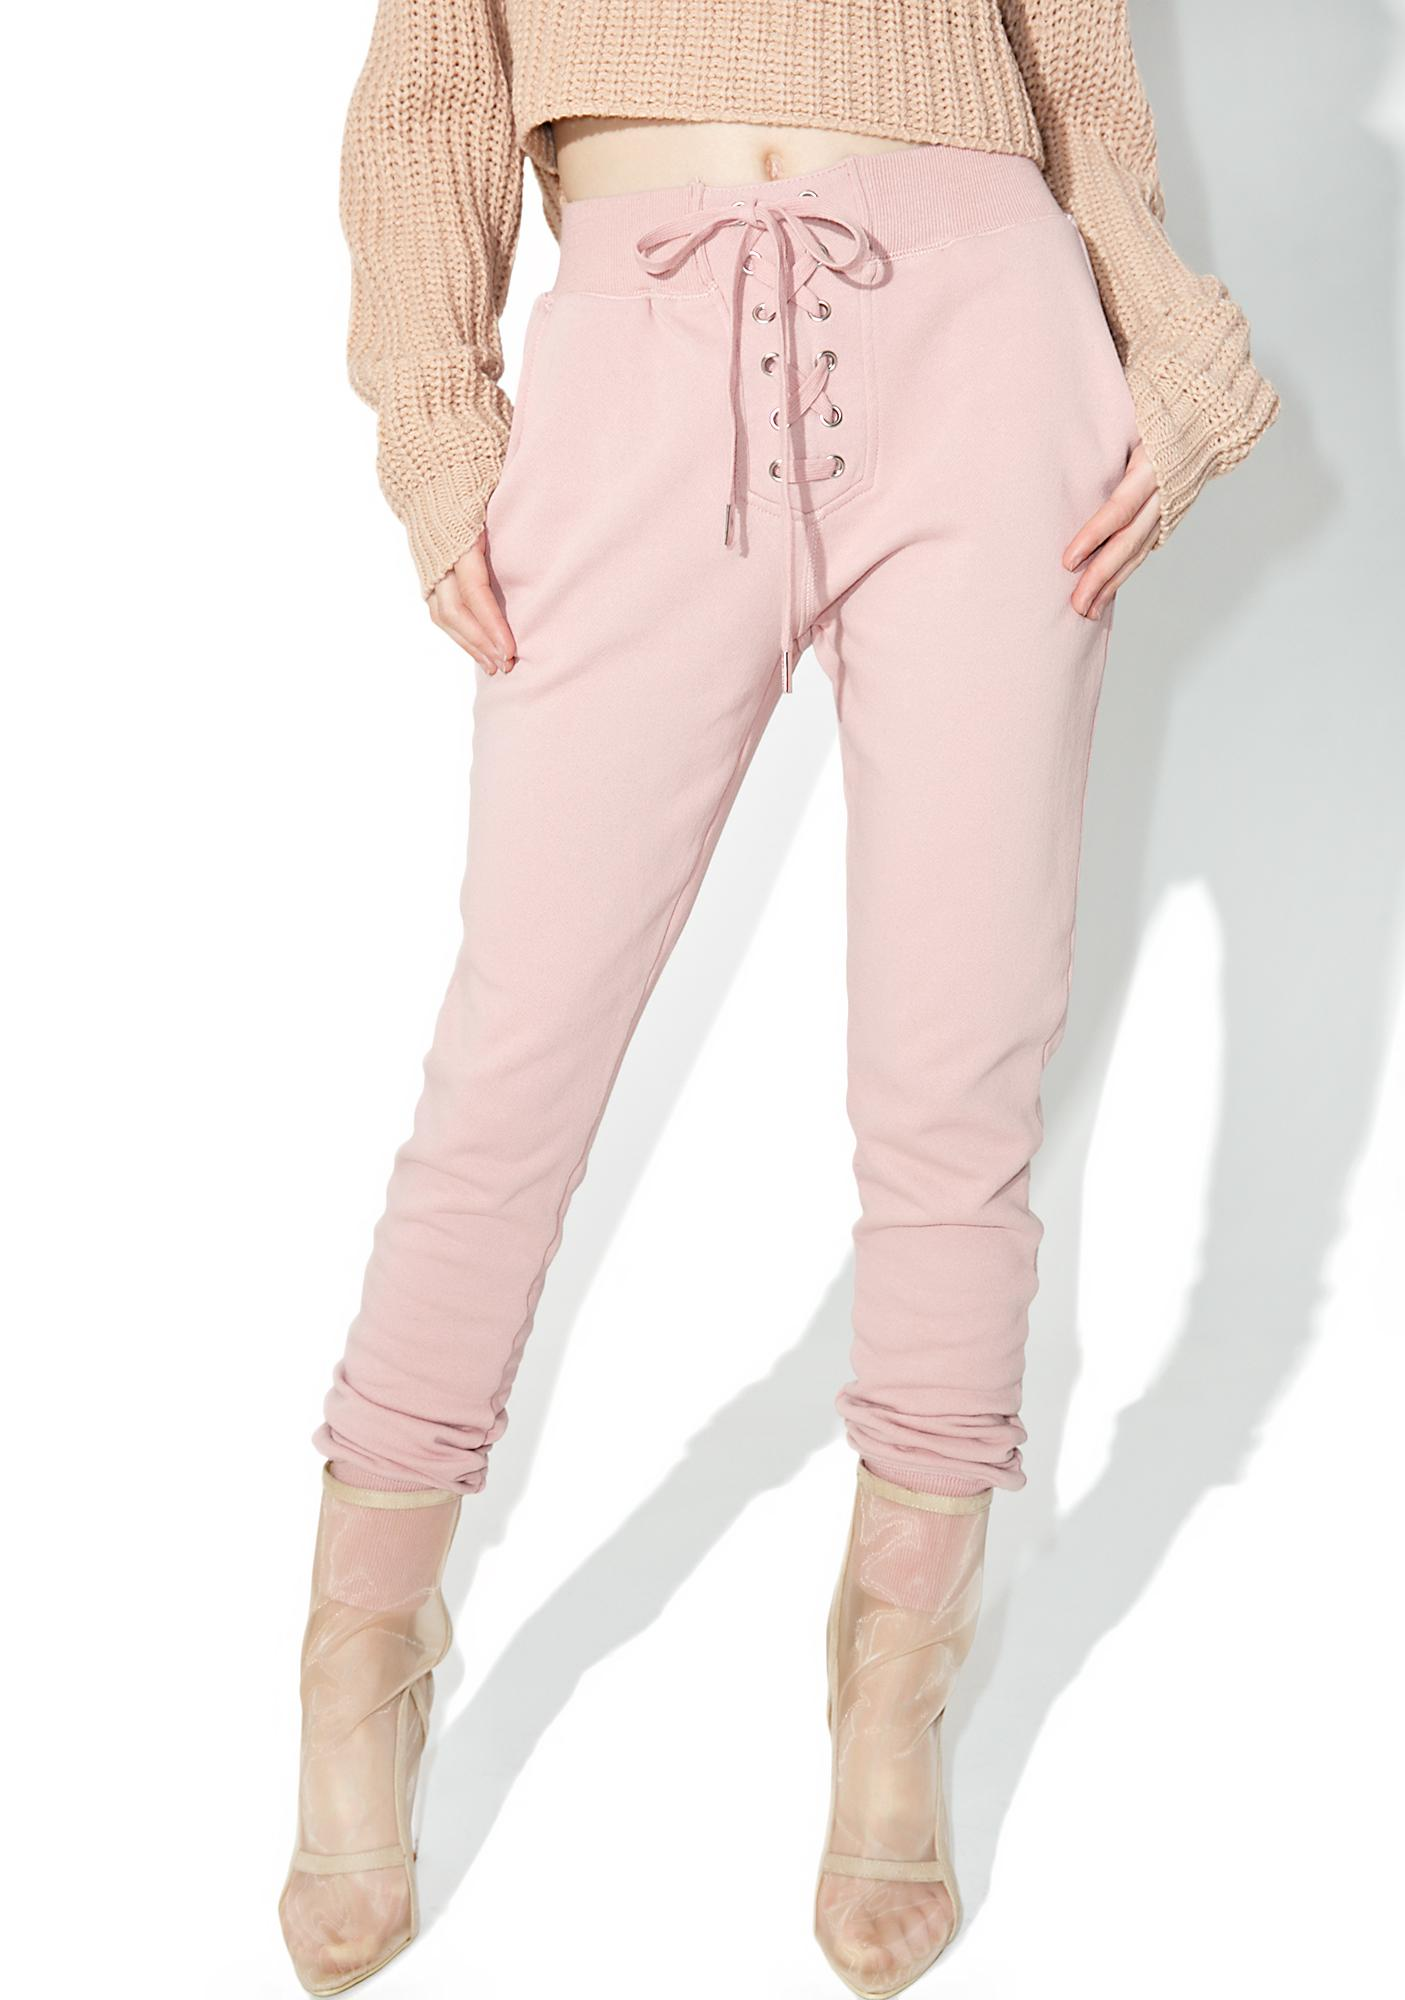 Kick Back Lace-Up Sweatpants